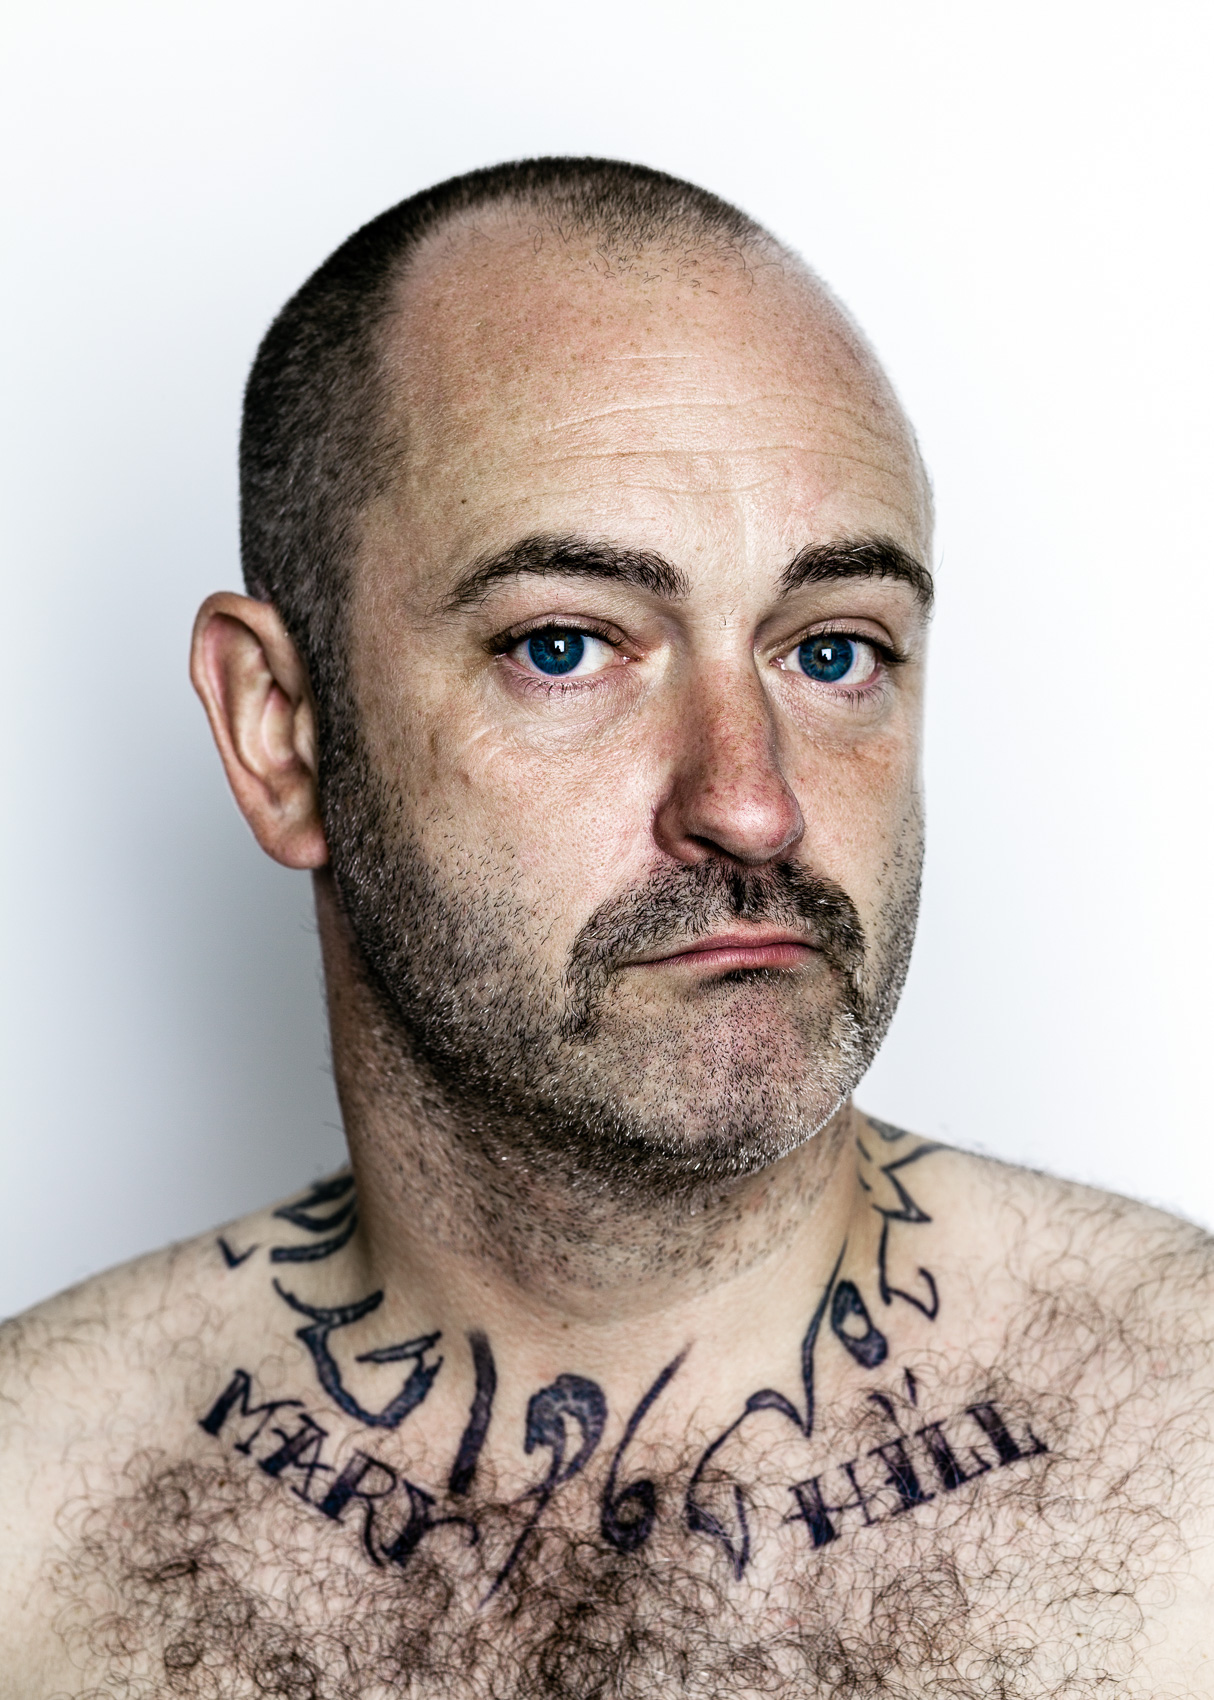 PATRICK STRATTNER PHOTOGRAPHY | Douglas Gordon / The Herald Magazine